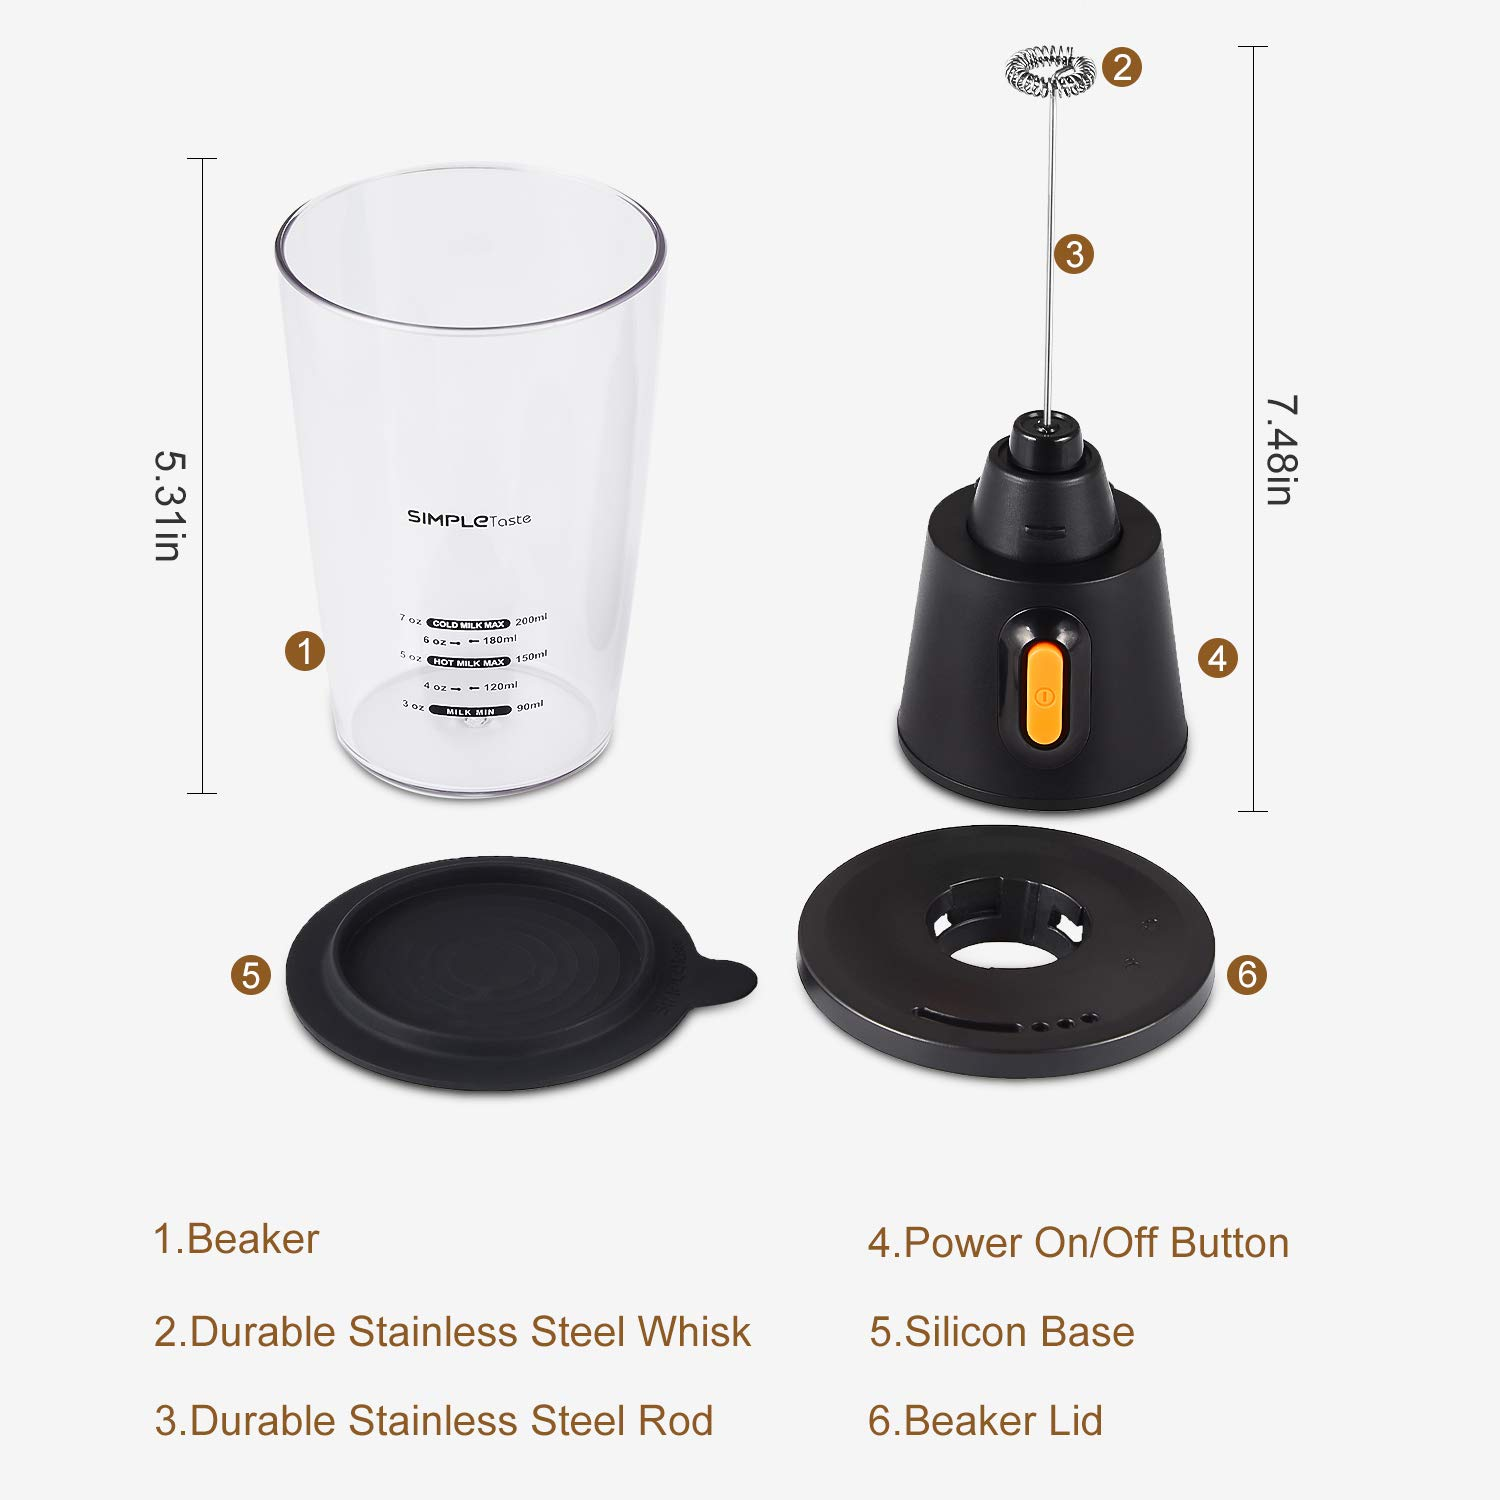 SIMPLETASTE Electric Milk Frother Automatic Battery Operated Foam Maker Coffee, Cappuccino and Latte, 3.74 x 3.74 x 7.68 inch, Black by SIMPLETASTE (Image #2)